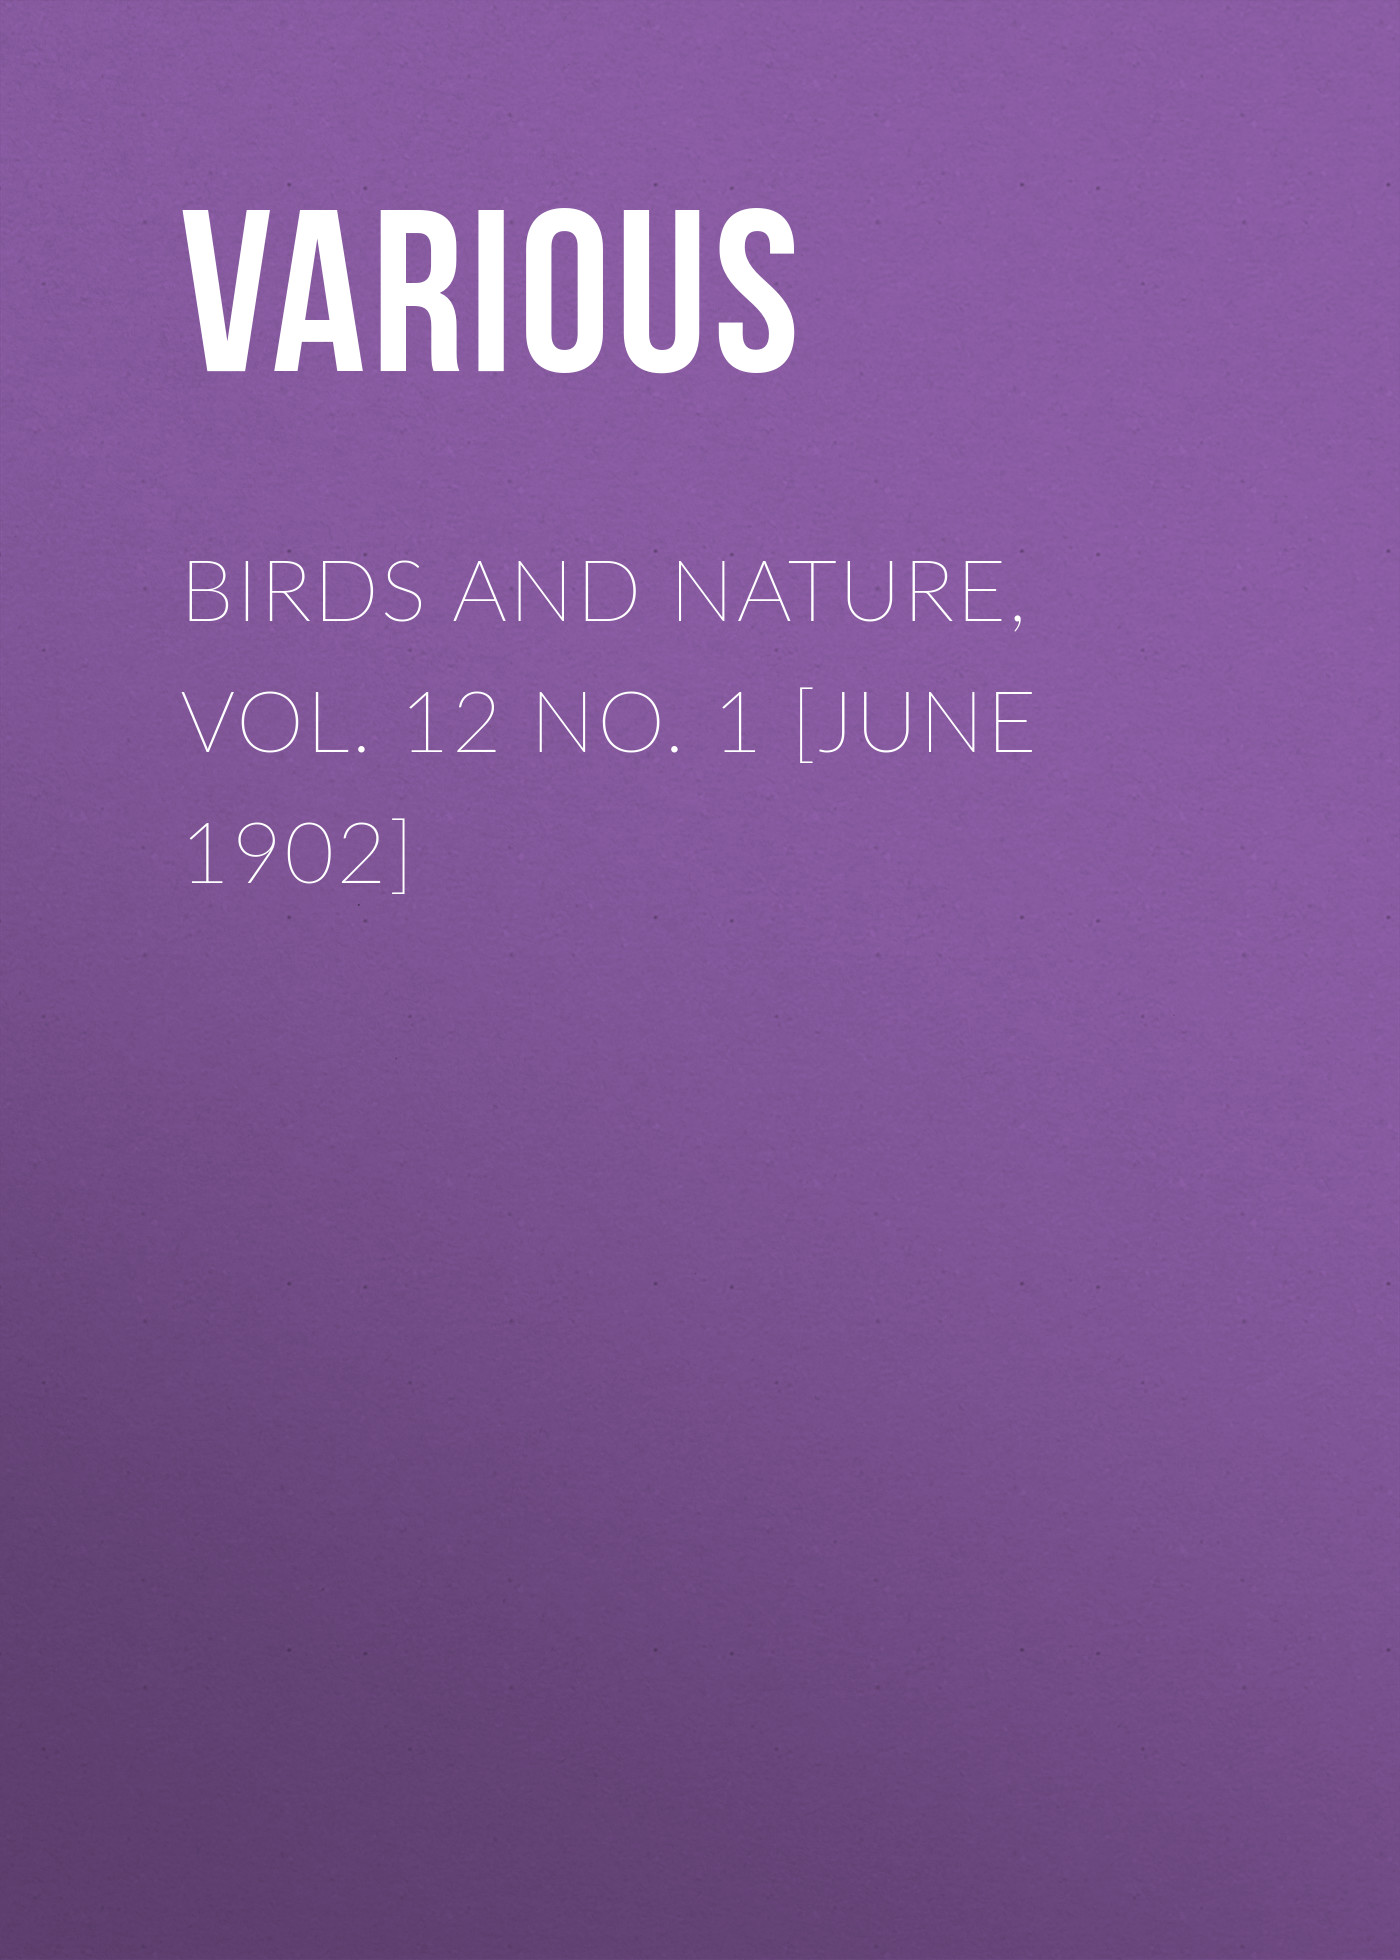 Various Birds and Nature, Vol. 12 No. 1 [June 1902]